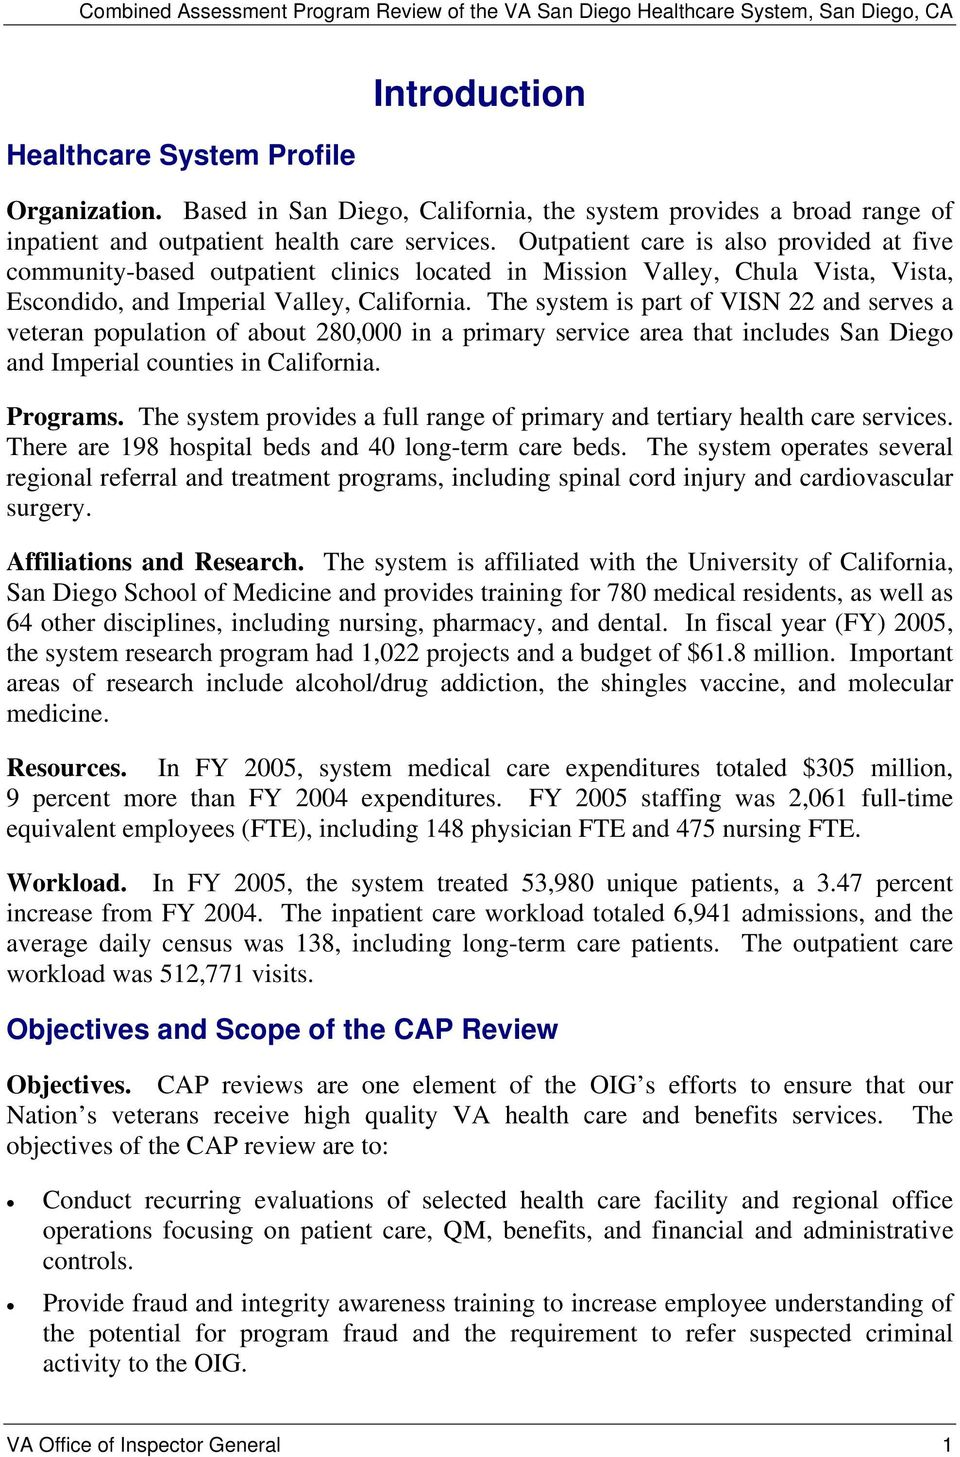 Combined Assessment Program Review of the VA San Diego